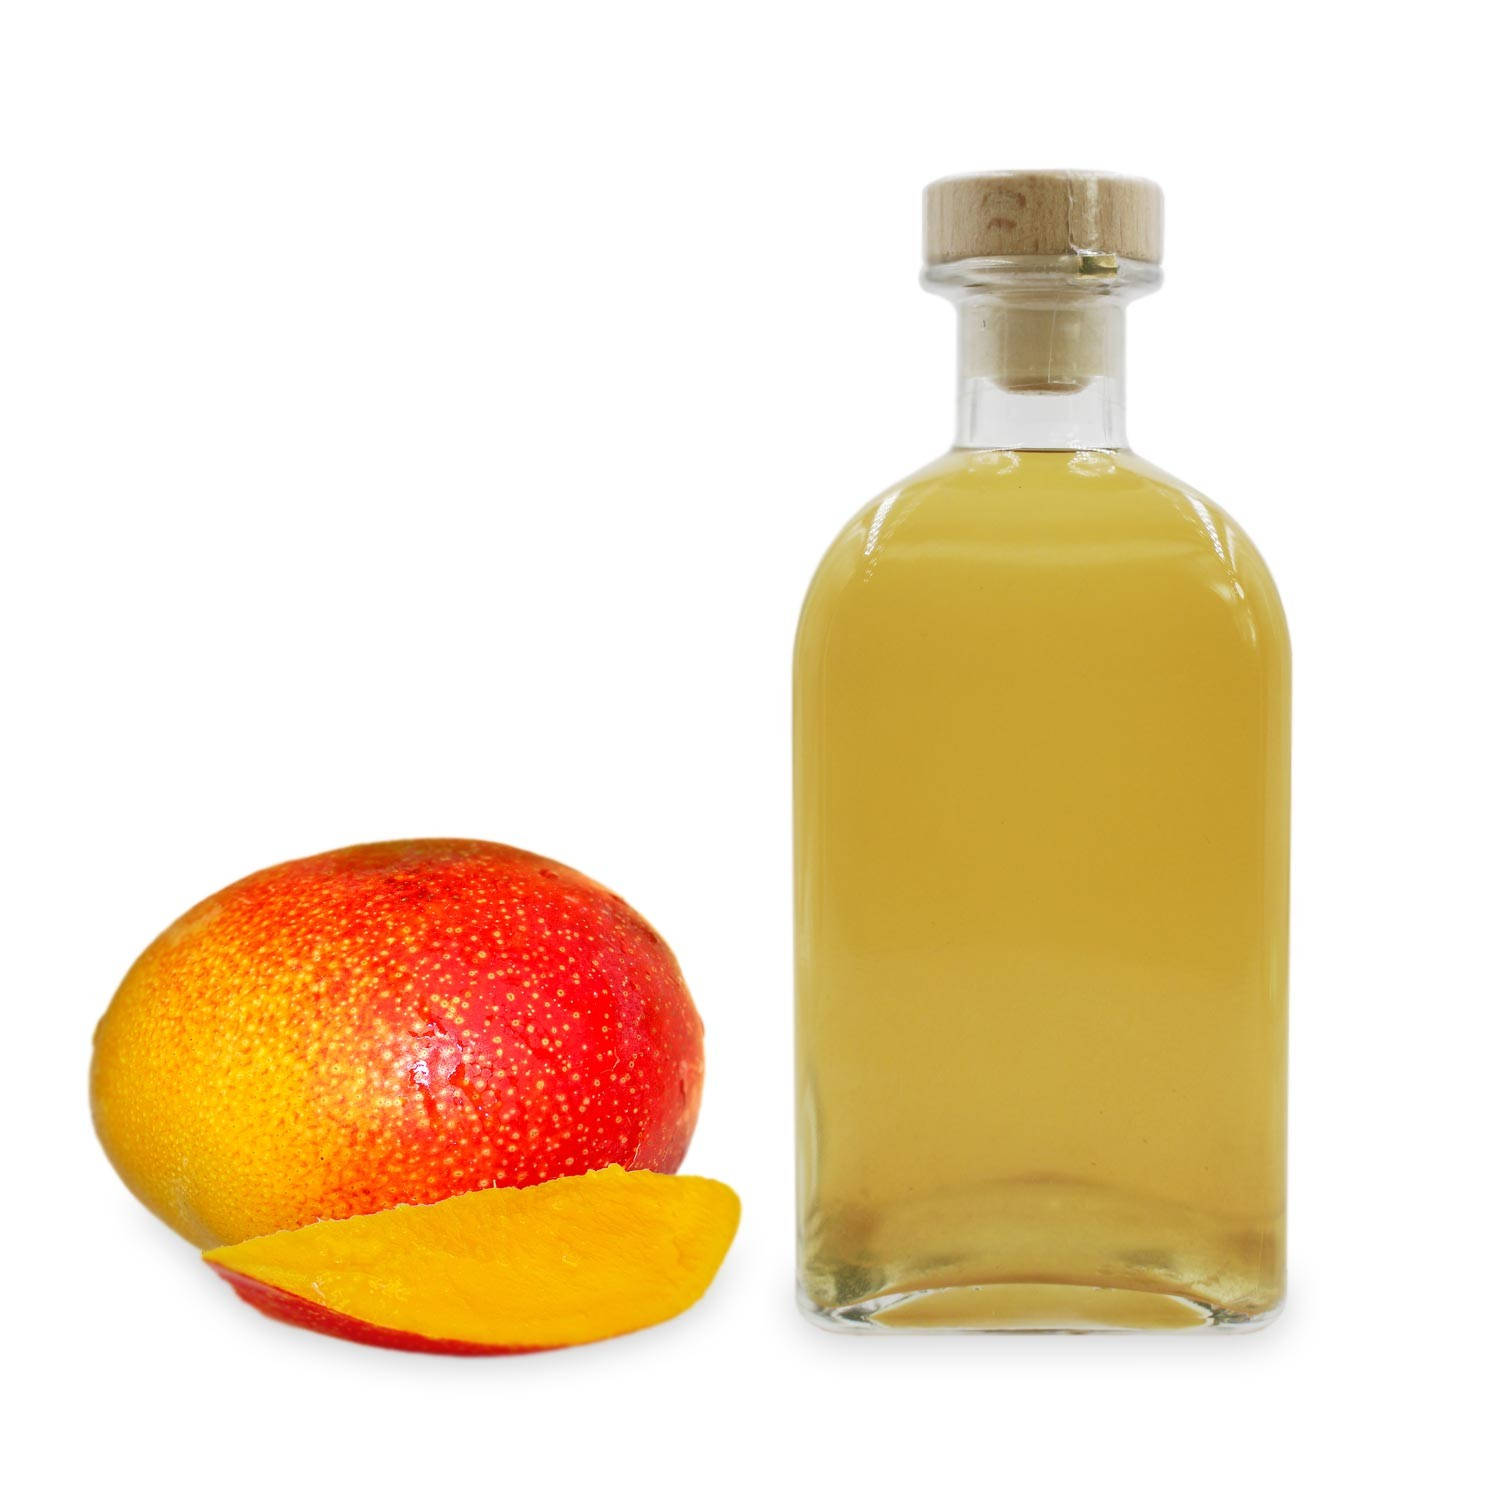 Whisky mangue